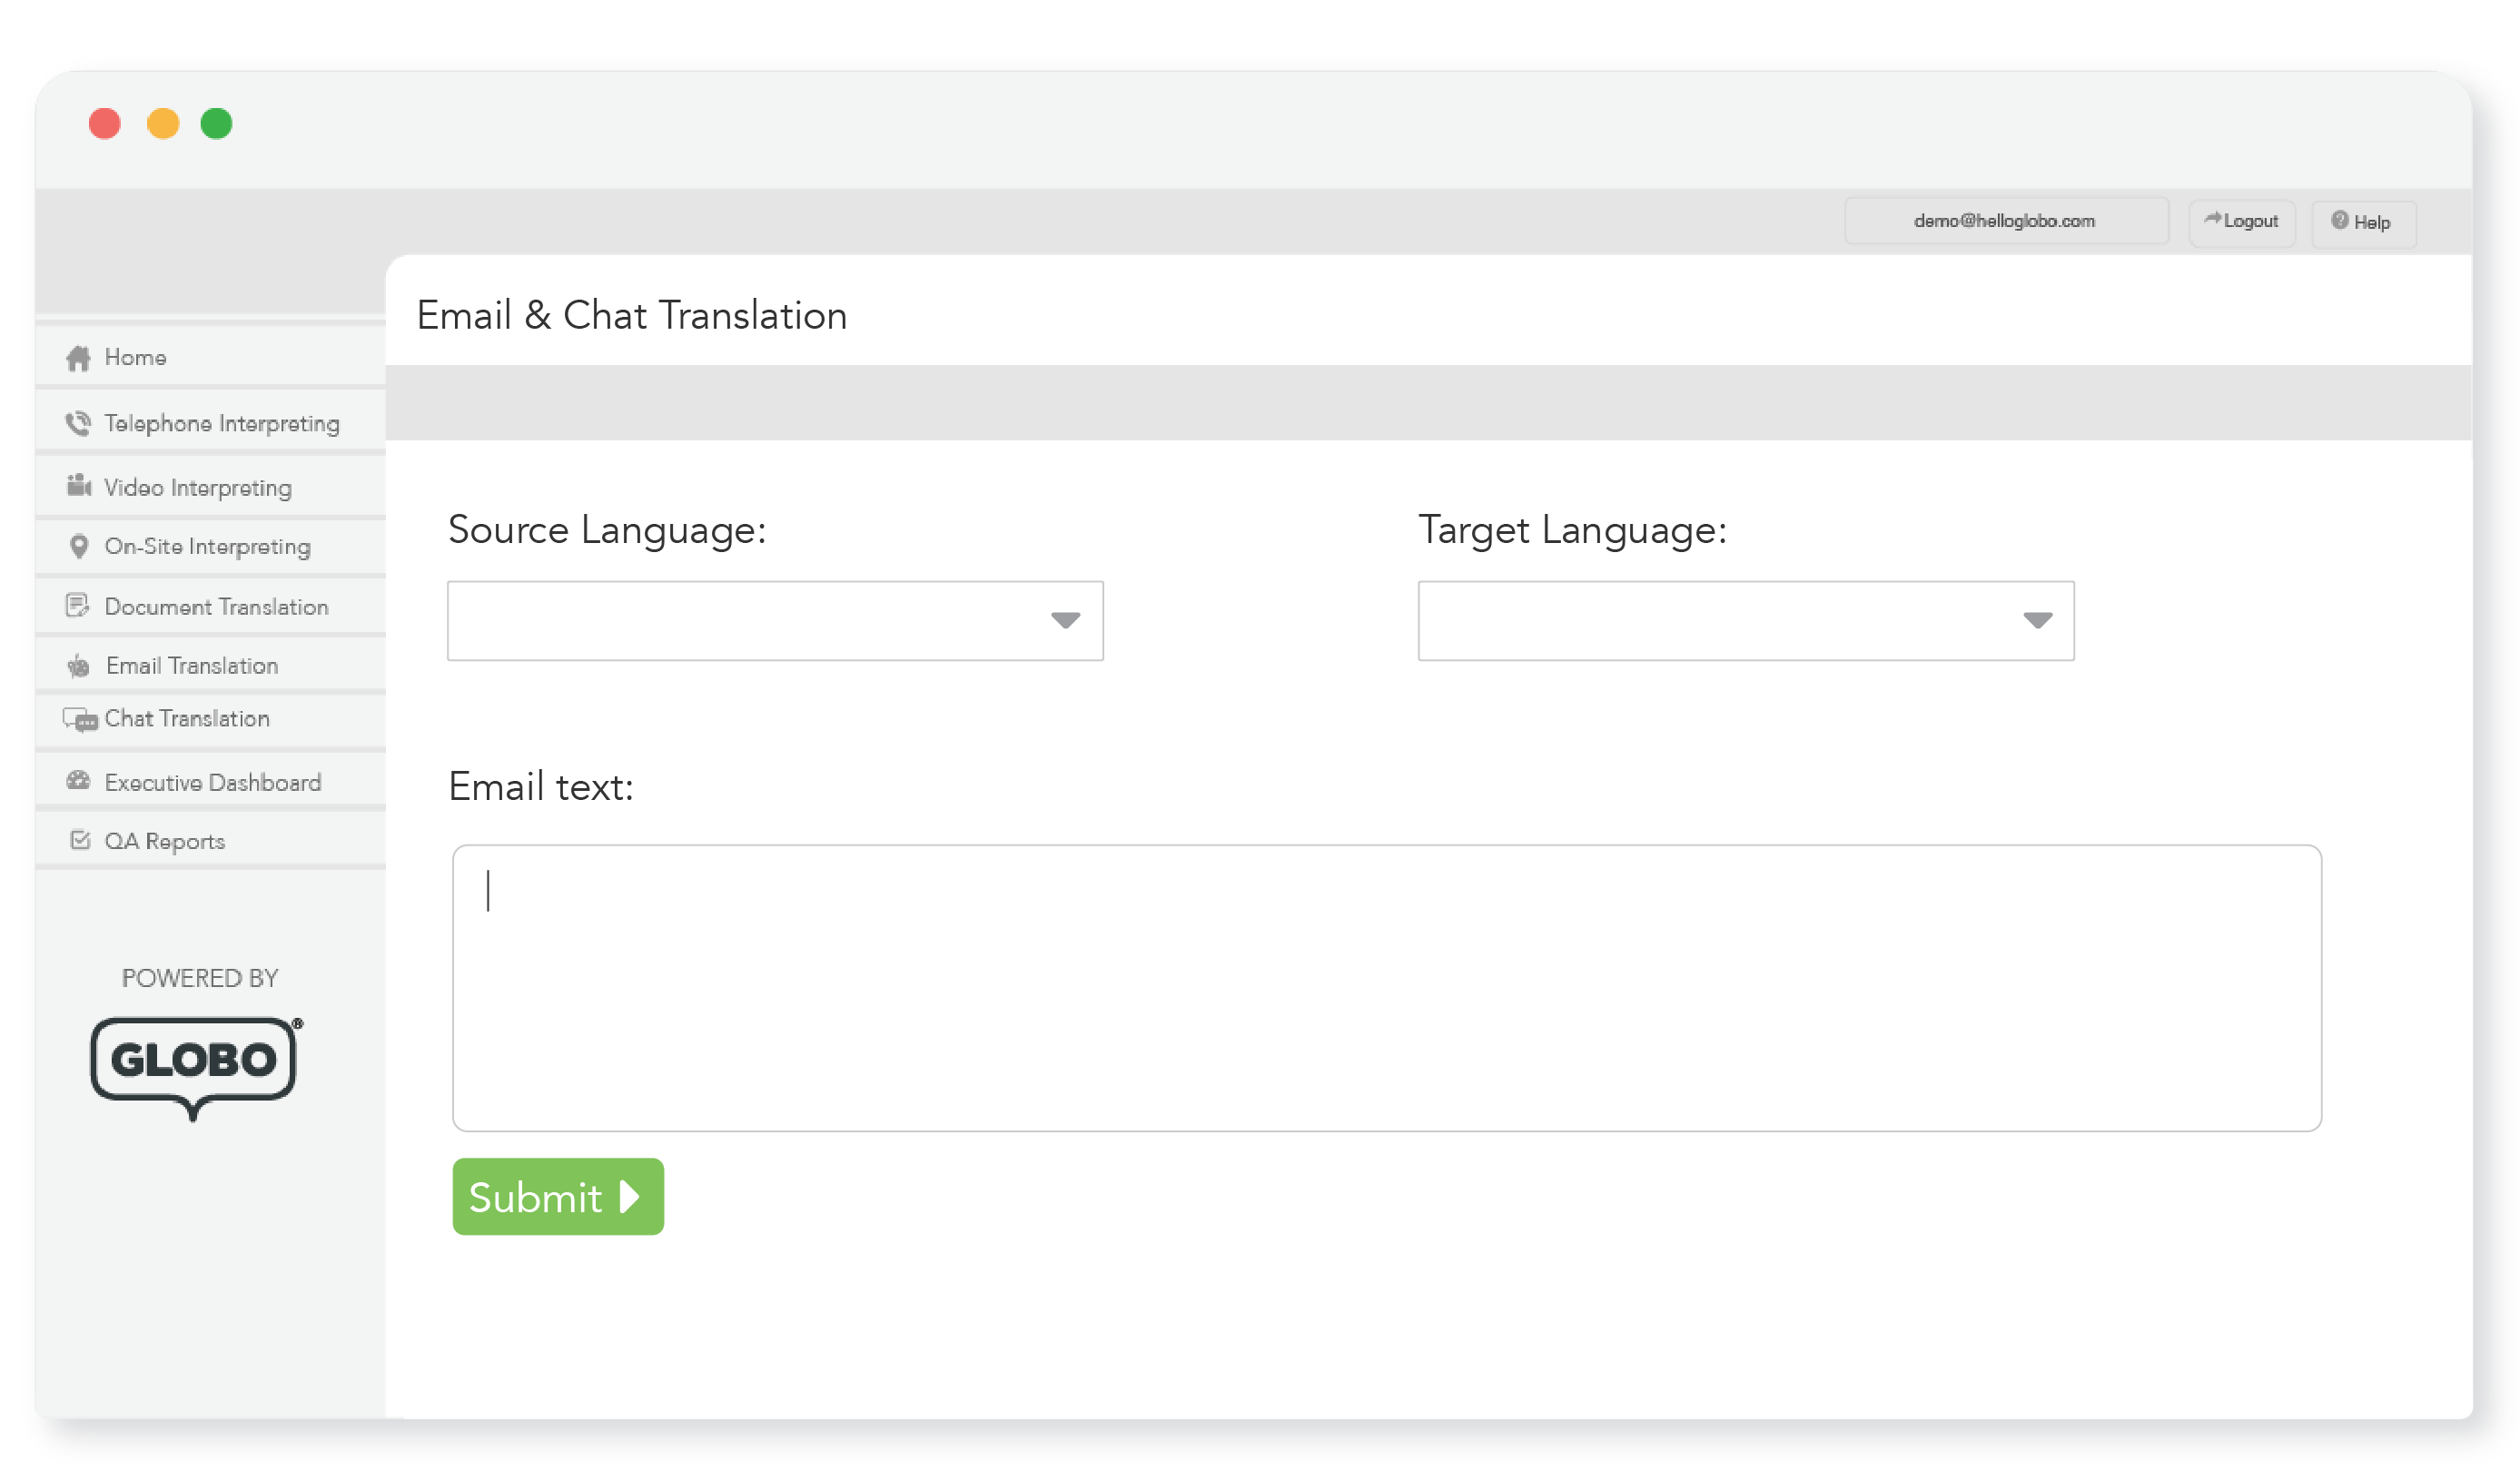 Email and chat translation